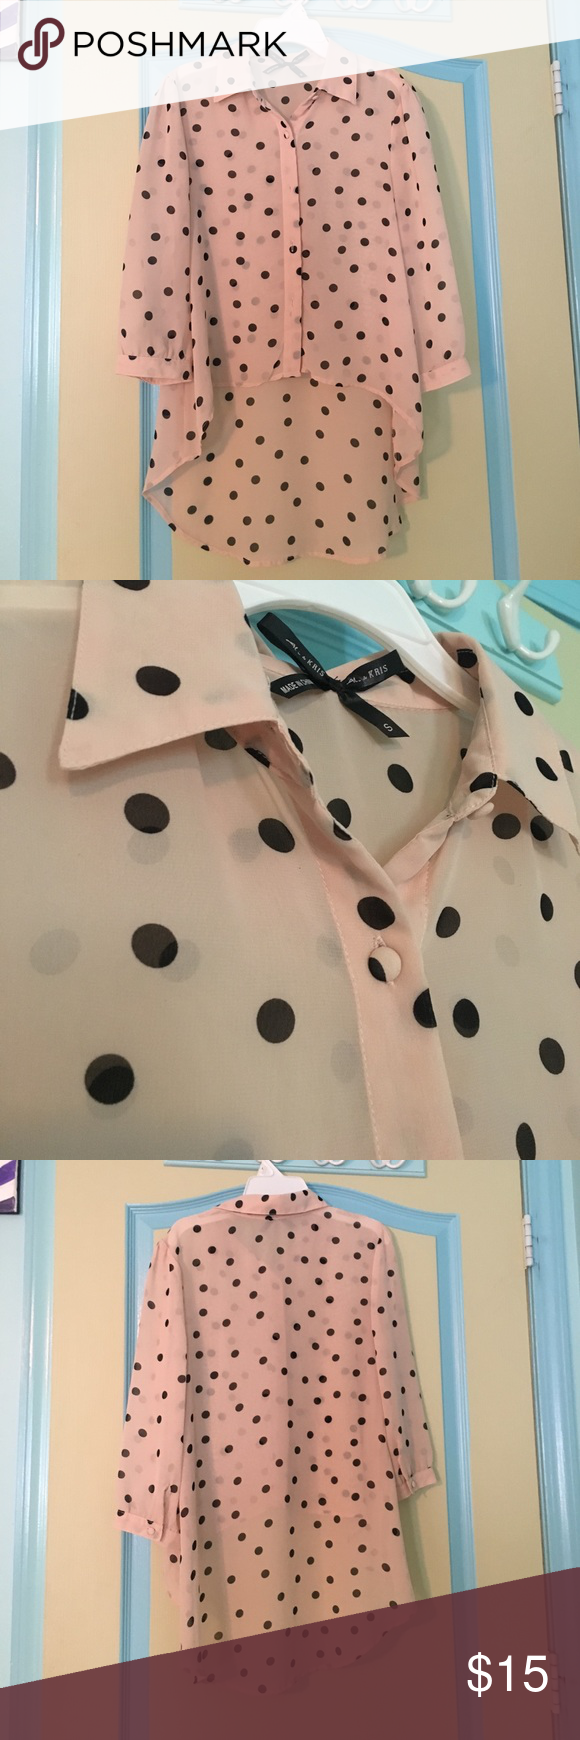 Polka dot high low button up Polka for high low top. Buttons in the front. Worn once. Only flaw is shown in the picture above, it's not a stain, seems to be a material defect. But it's on the back so not obvious at all. Bought from Windsor, bean Ali and kris. Offers are welcome! WINDSOR Tops Blouses